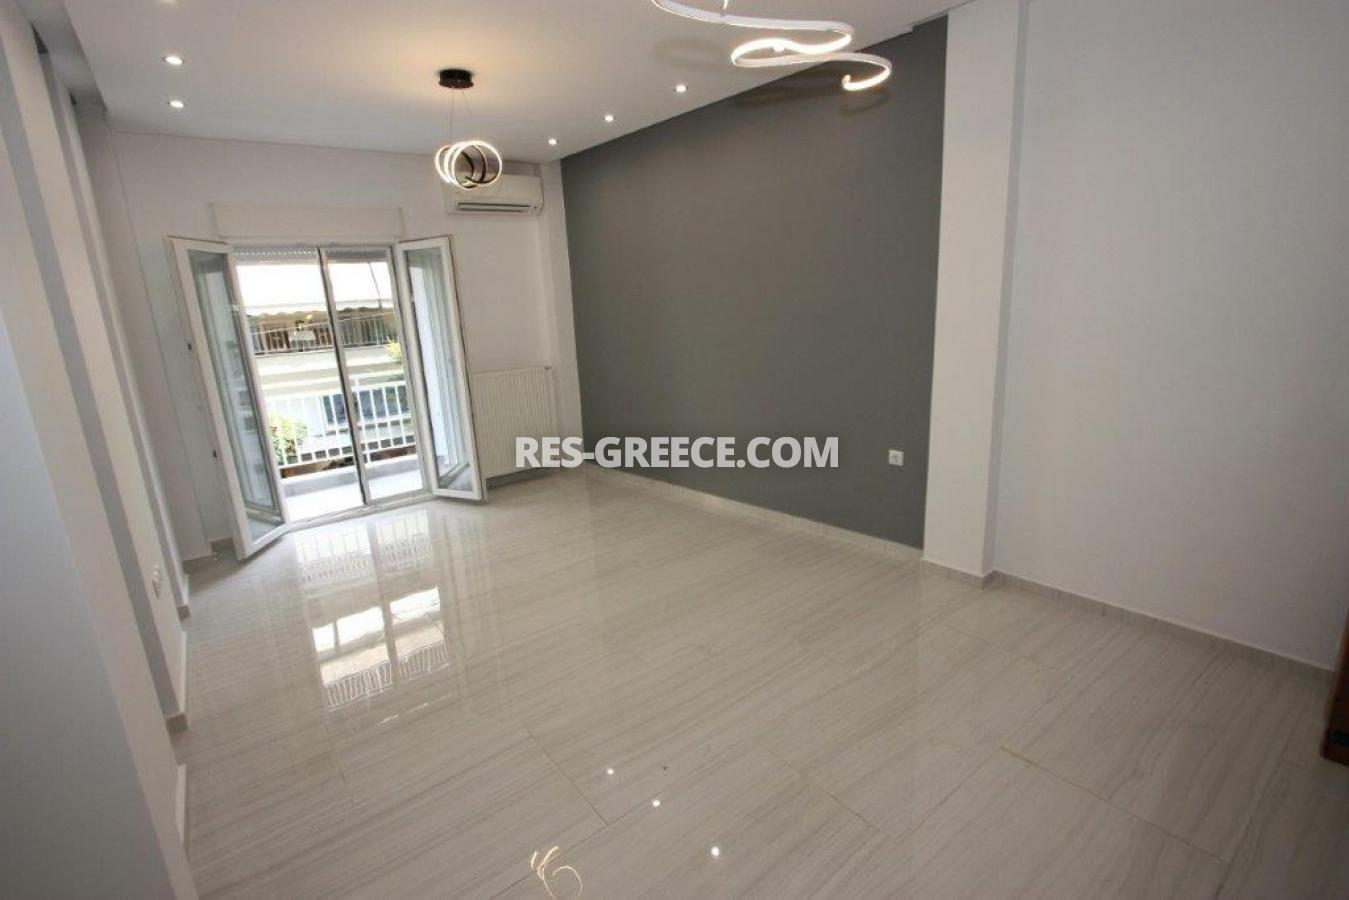 Poli 21, Central Macedonia, Greece - Apartment for residence or for long term rent - Photo 12